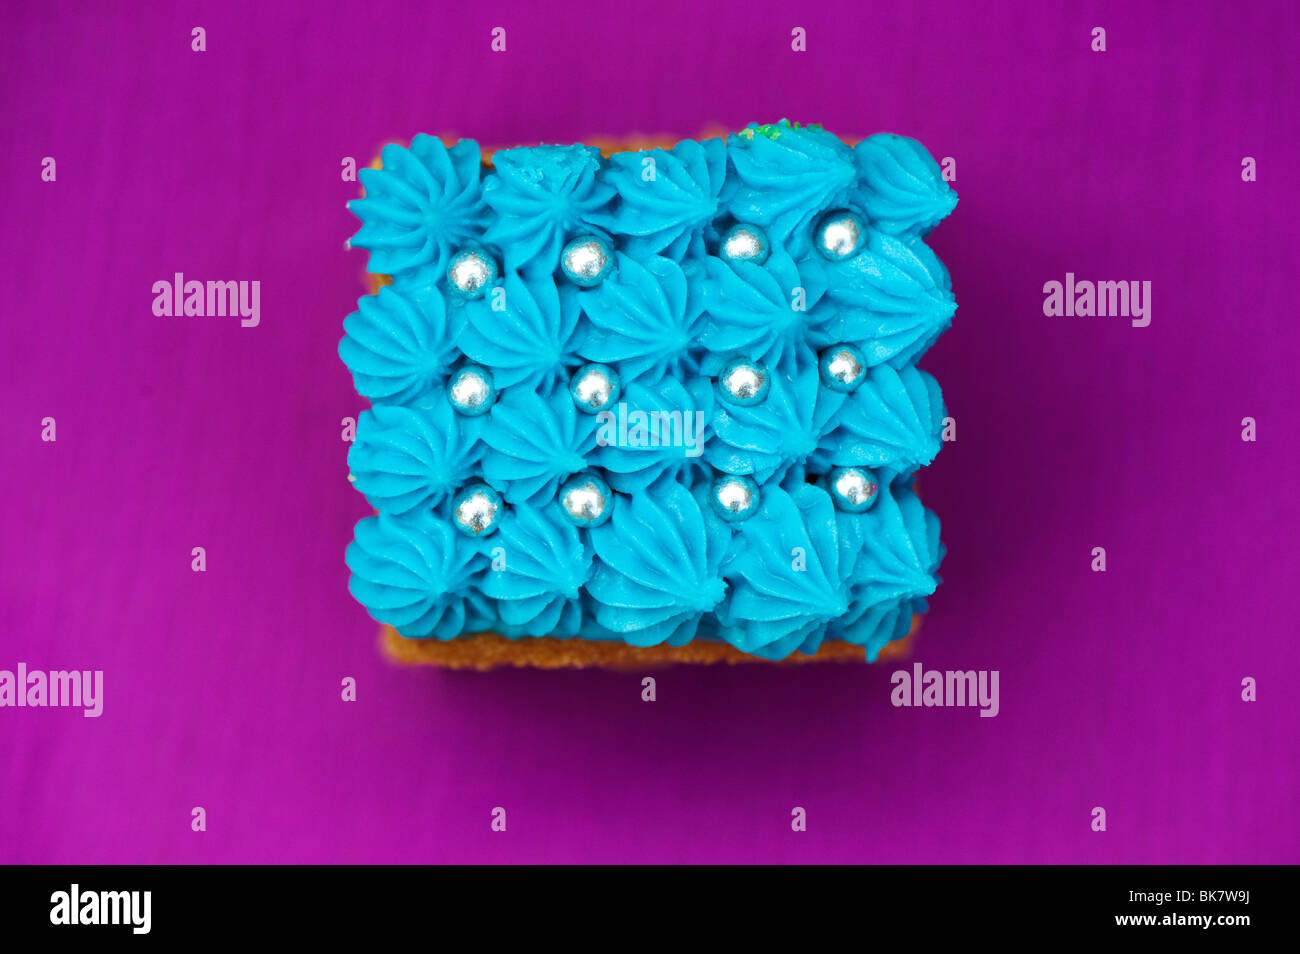 Homemade square individual iced cakes - Stock Image